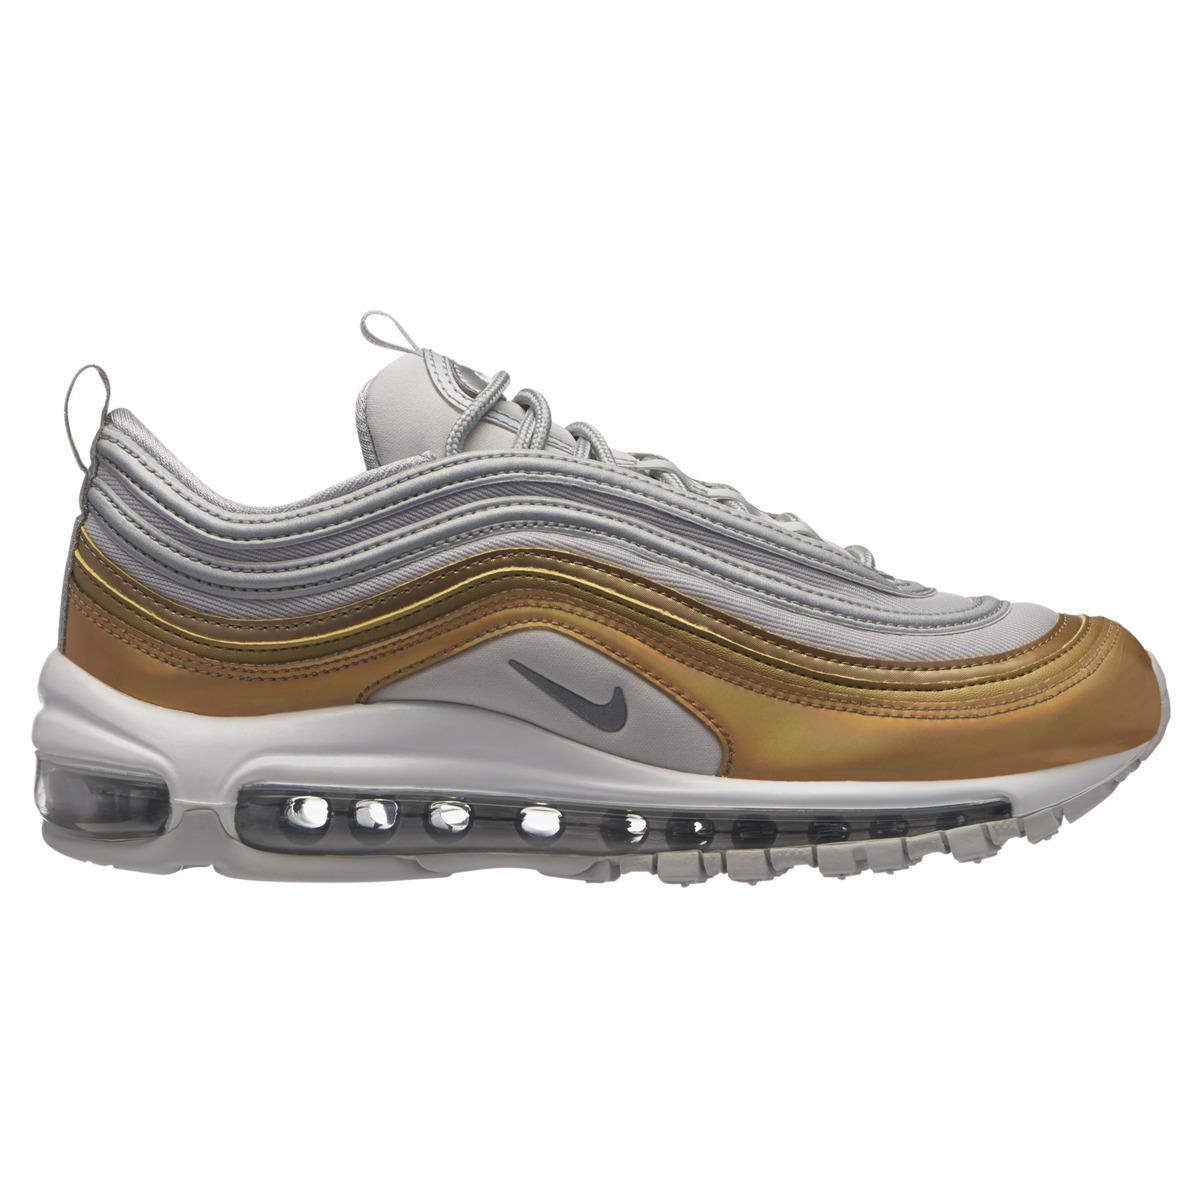 Lyst Nike Air Max 97 Special Edition Casual Trainers in Gray